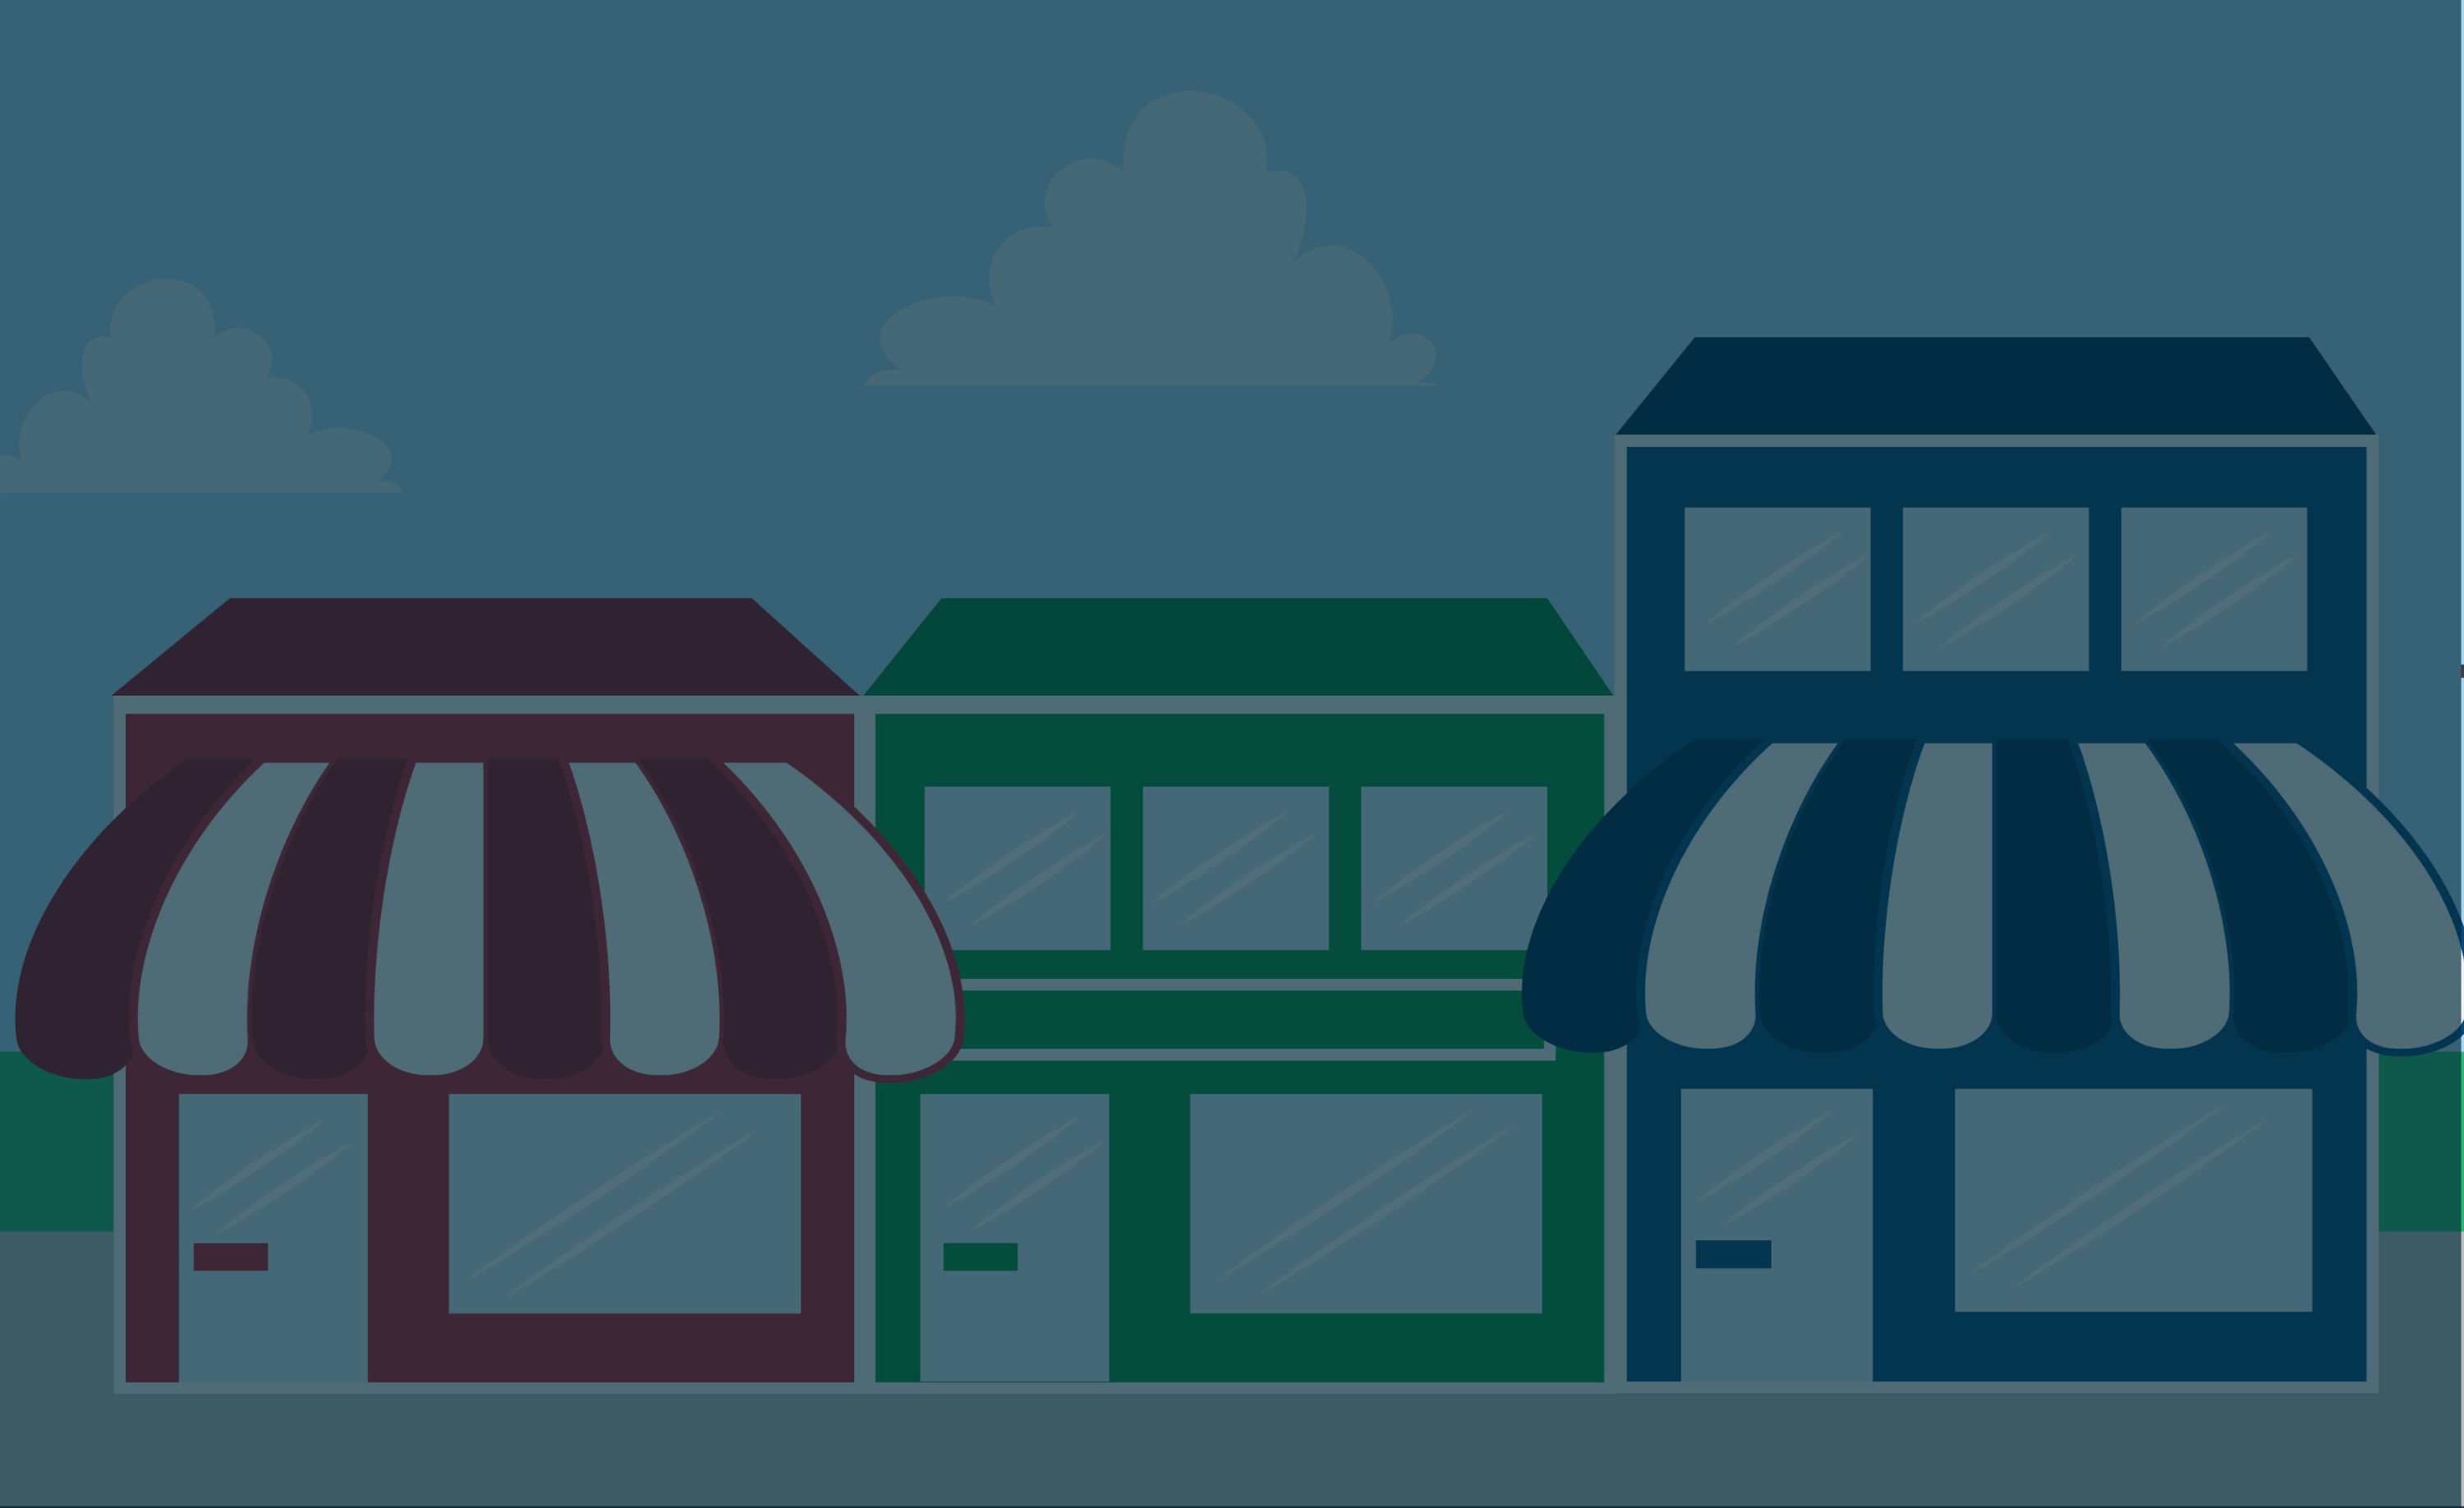 Illustration of businesses on a street